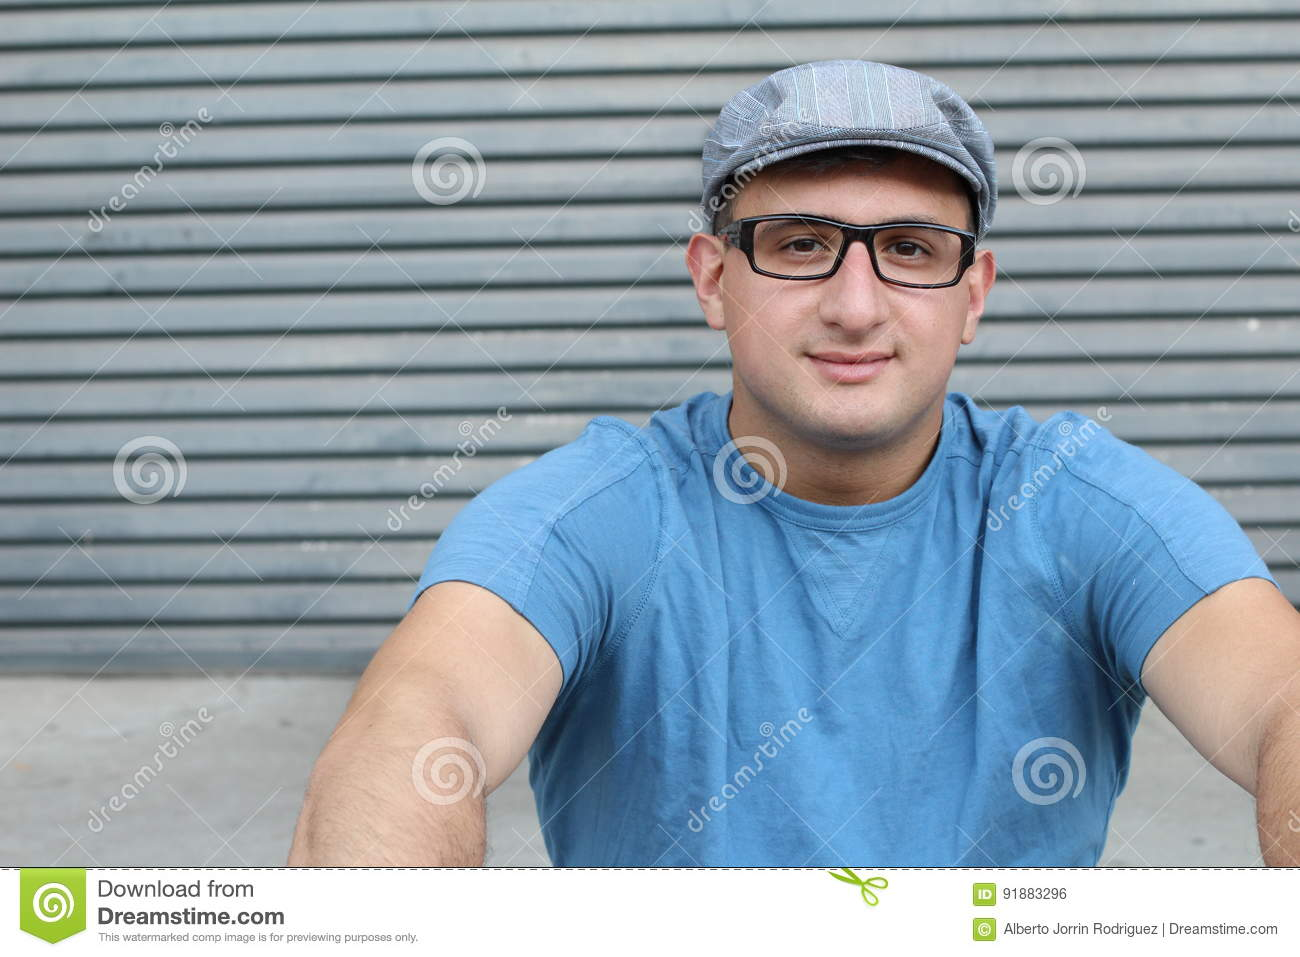 Portrait of handsome real looking man wearing glasses and hat sitting outdoors